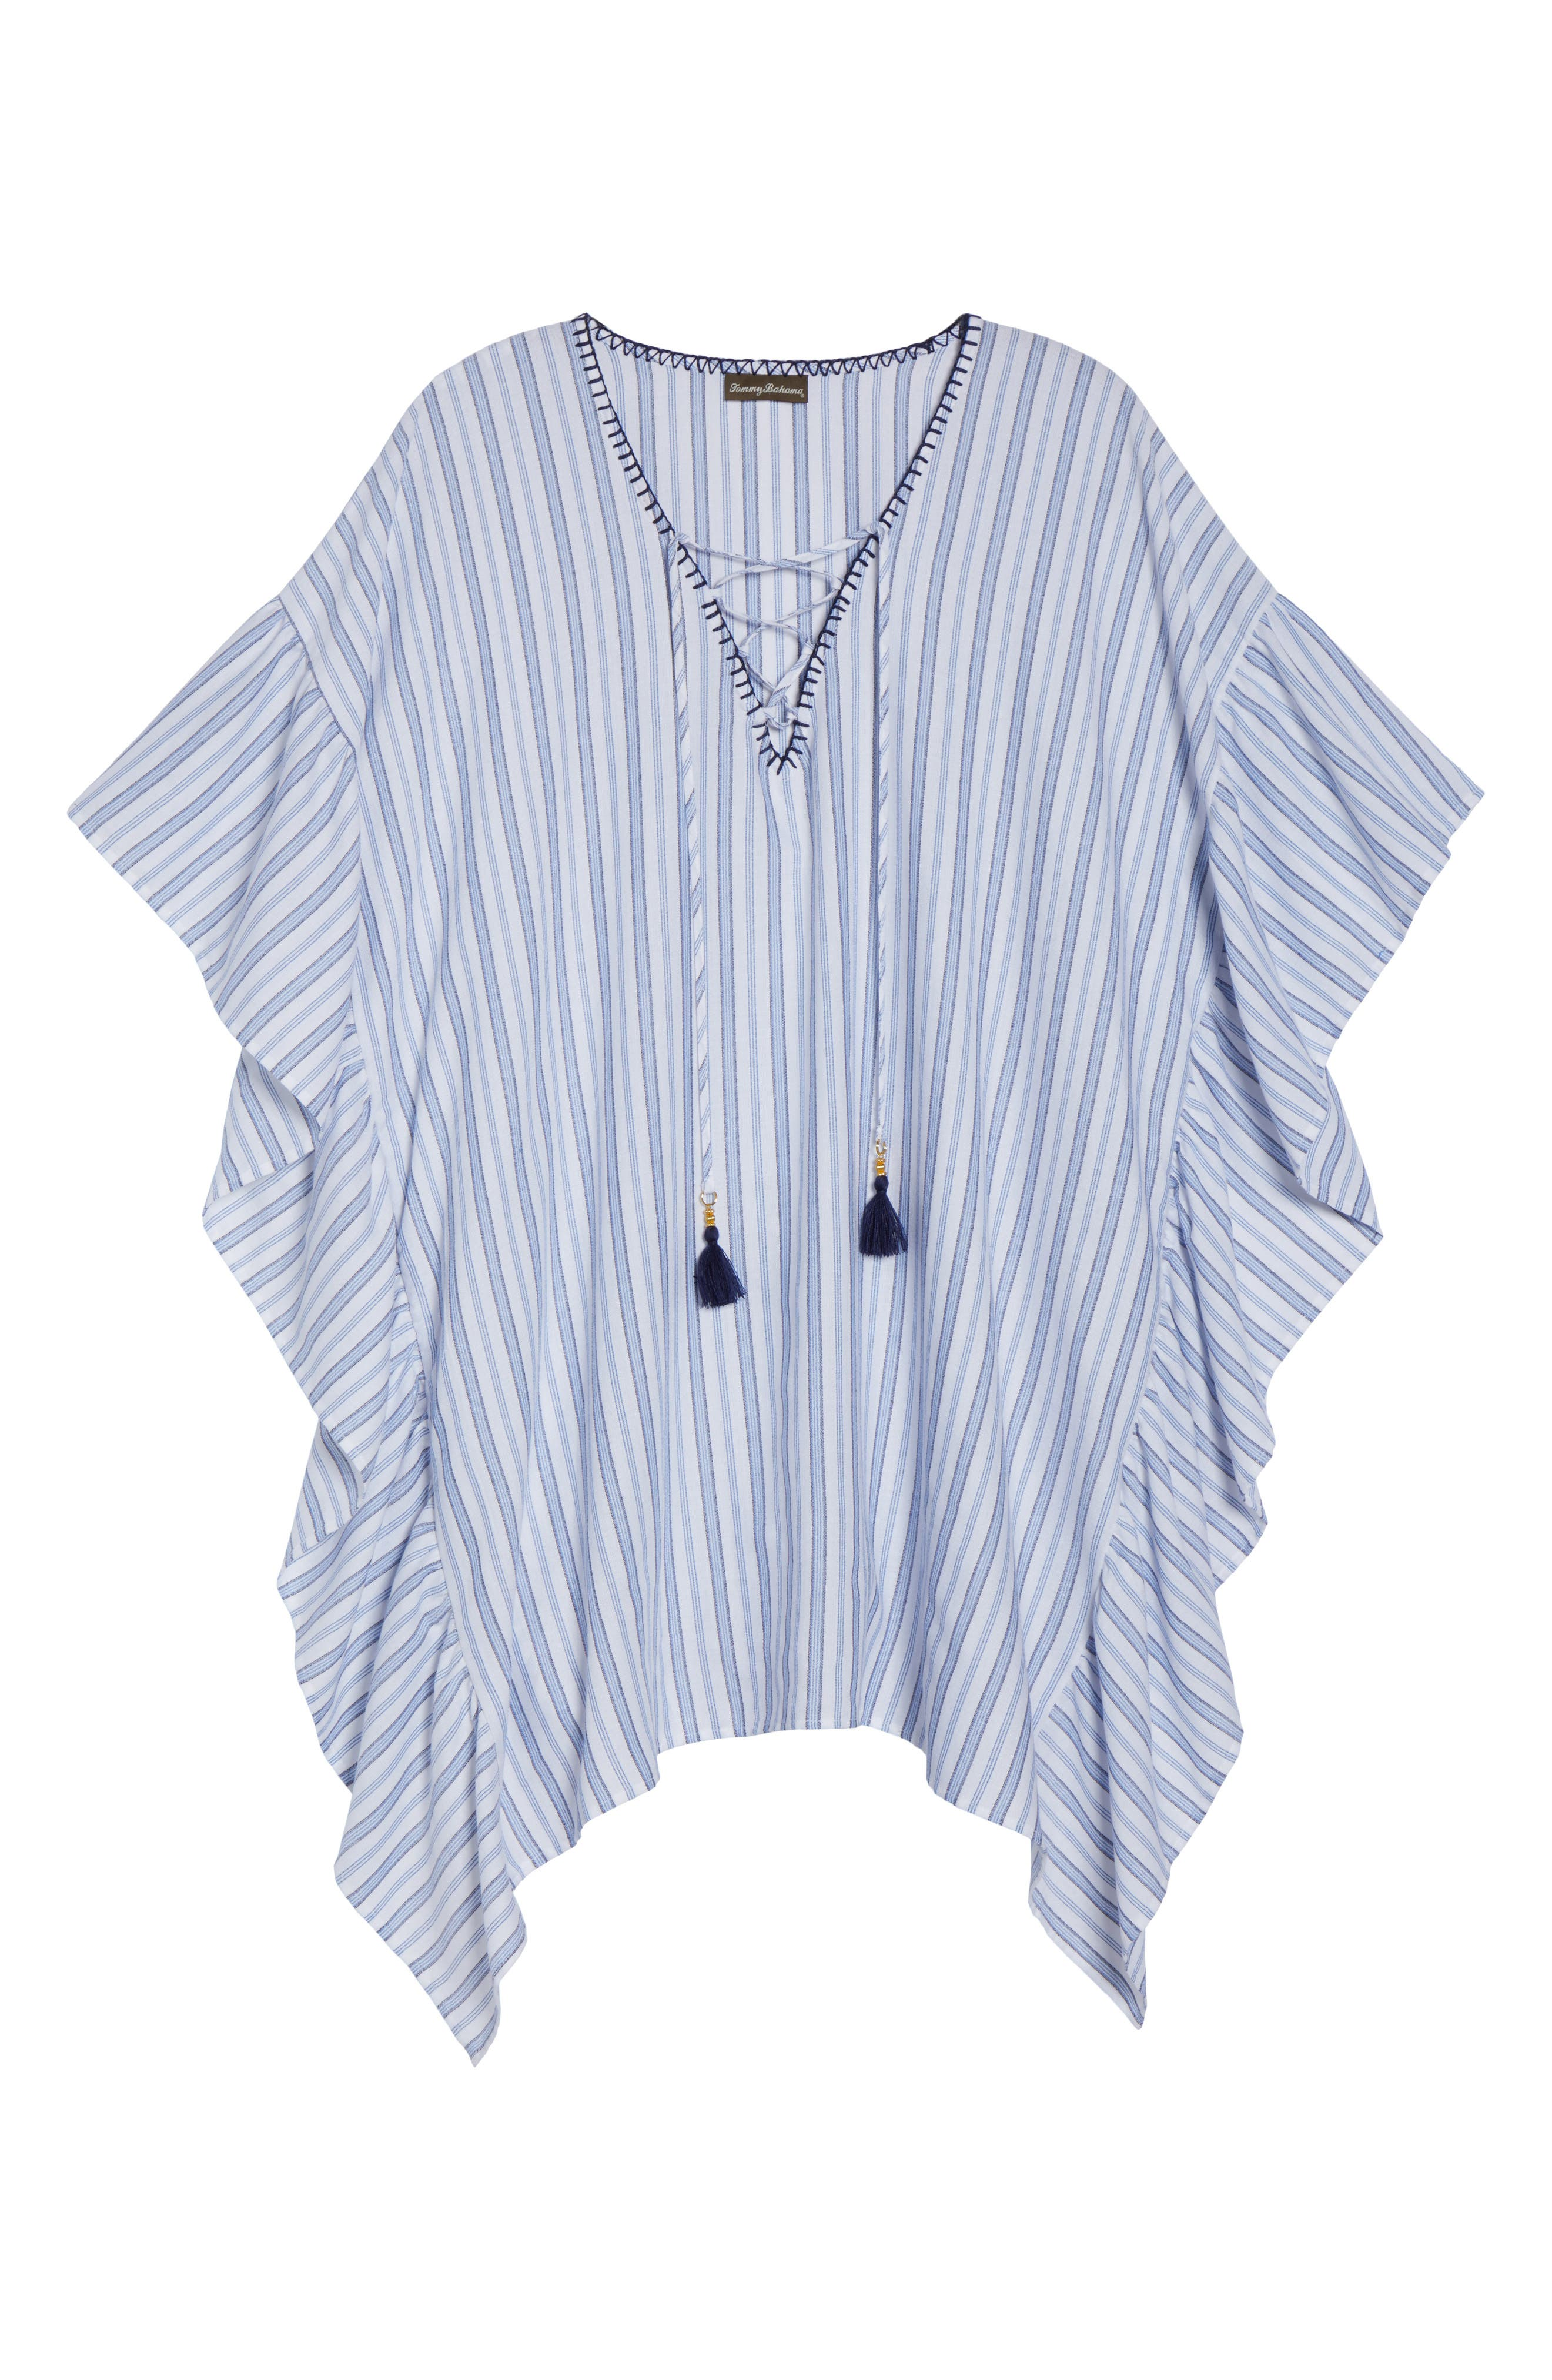 Ticking Stripe Cover-Up Tunic,                             Alternate thumbnail 6, color,                             White